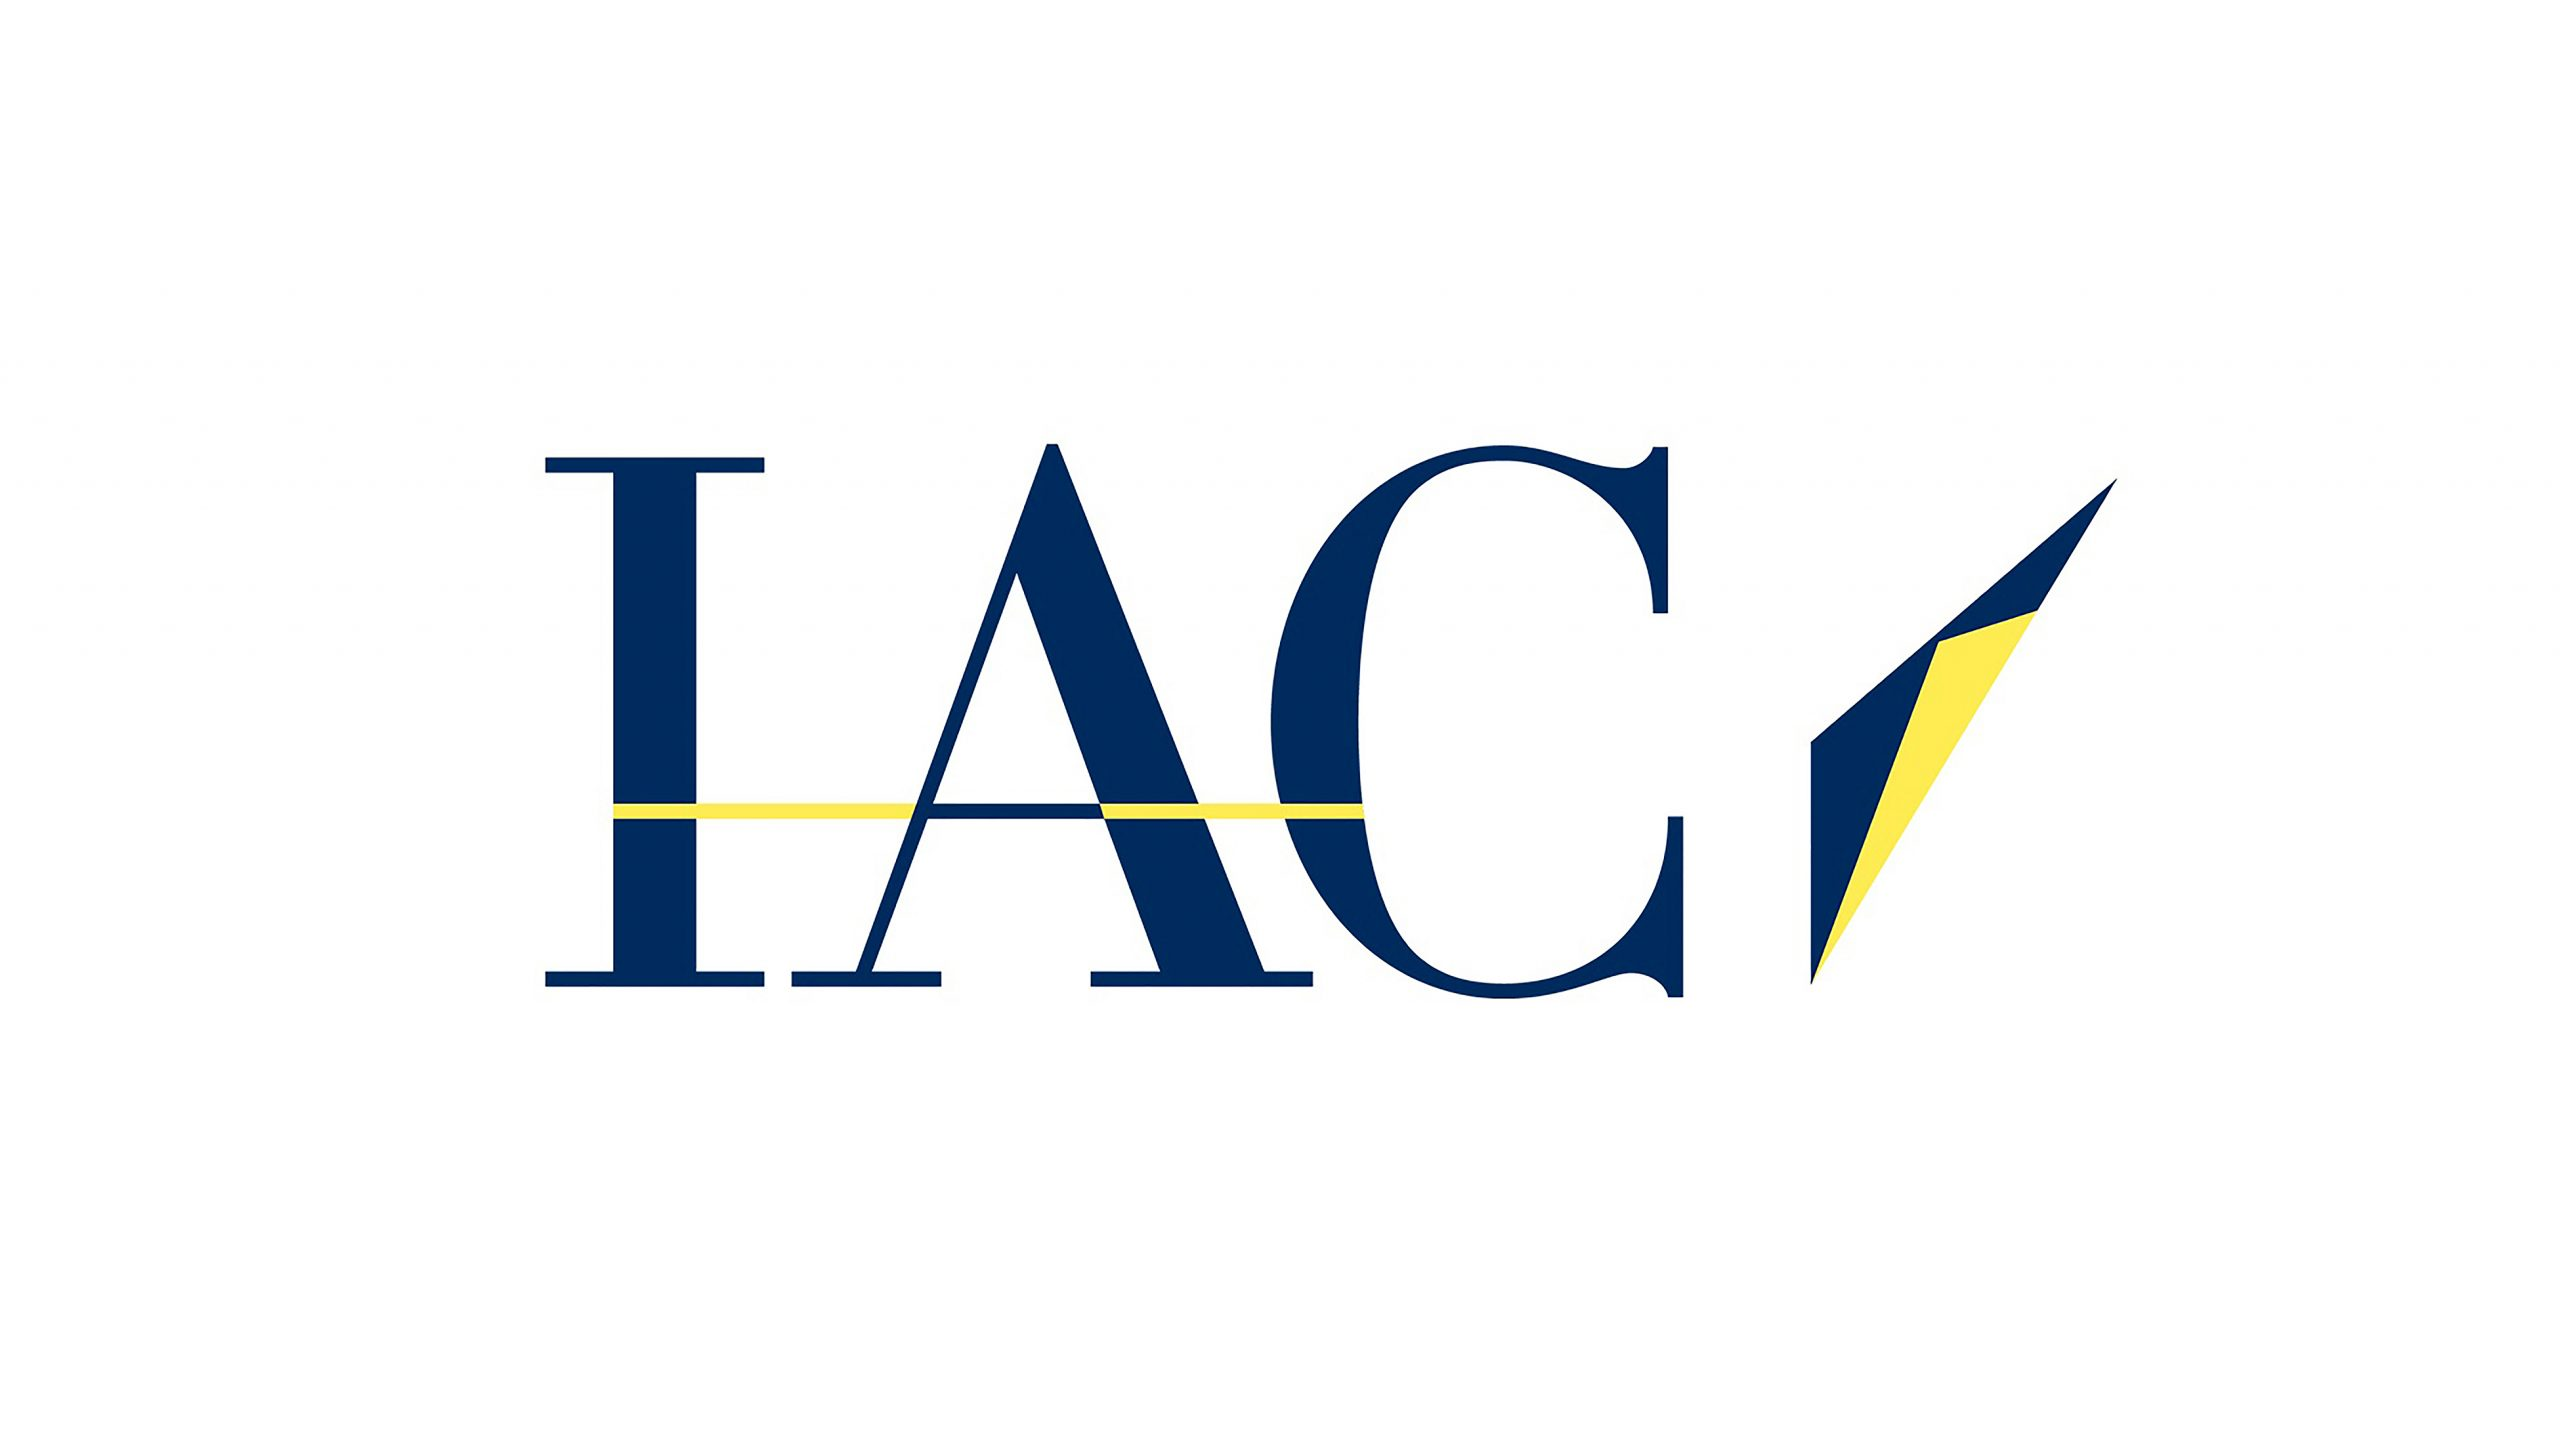 IAC LOGO 300 DPI Full Color resized